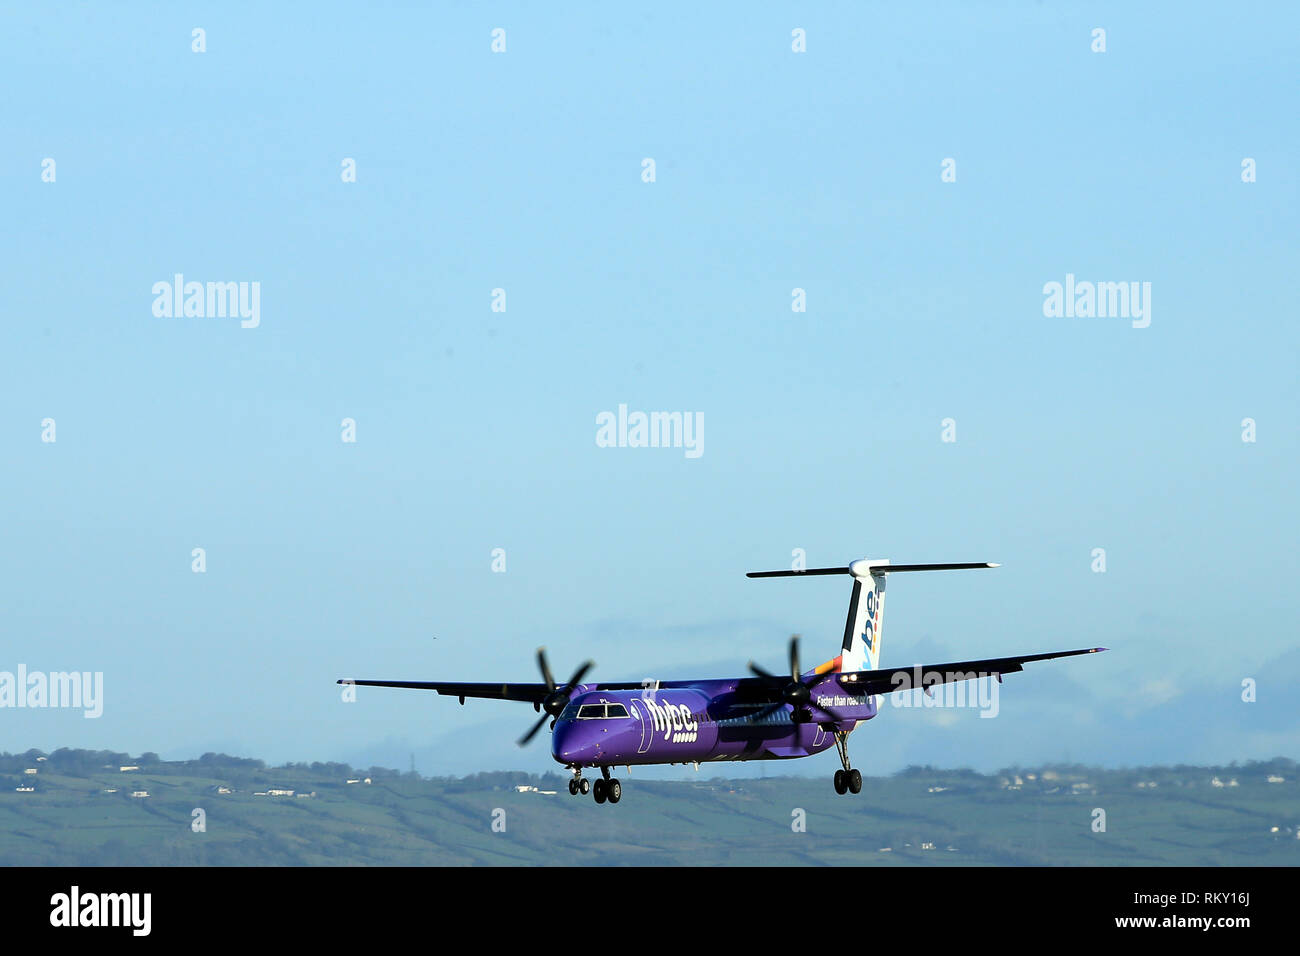 Aircraft arrive and depart from George Best Belfast City Airport in Belfast, Northern Ireland. - Stock Image